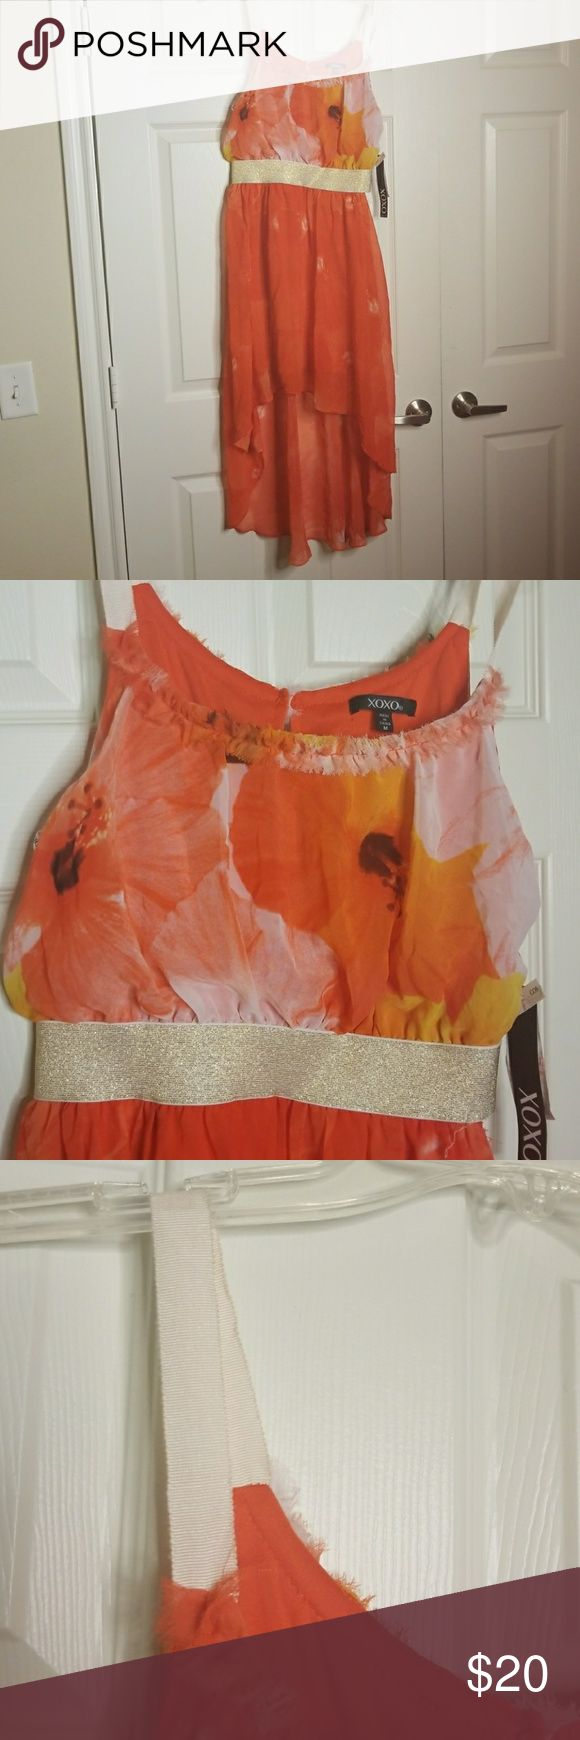 FLORAL HIGH LOW DRESS Orange red floral high low dress with light gold sparkly waist band. Never worn and has a small place where the waist band needs to be sewn. XOXO Dresses High Low